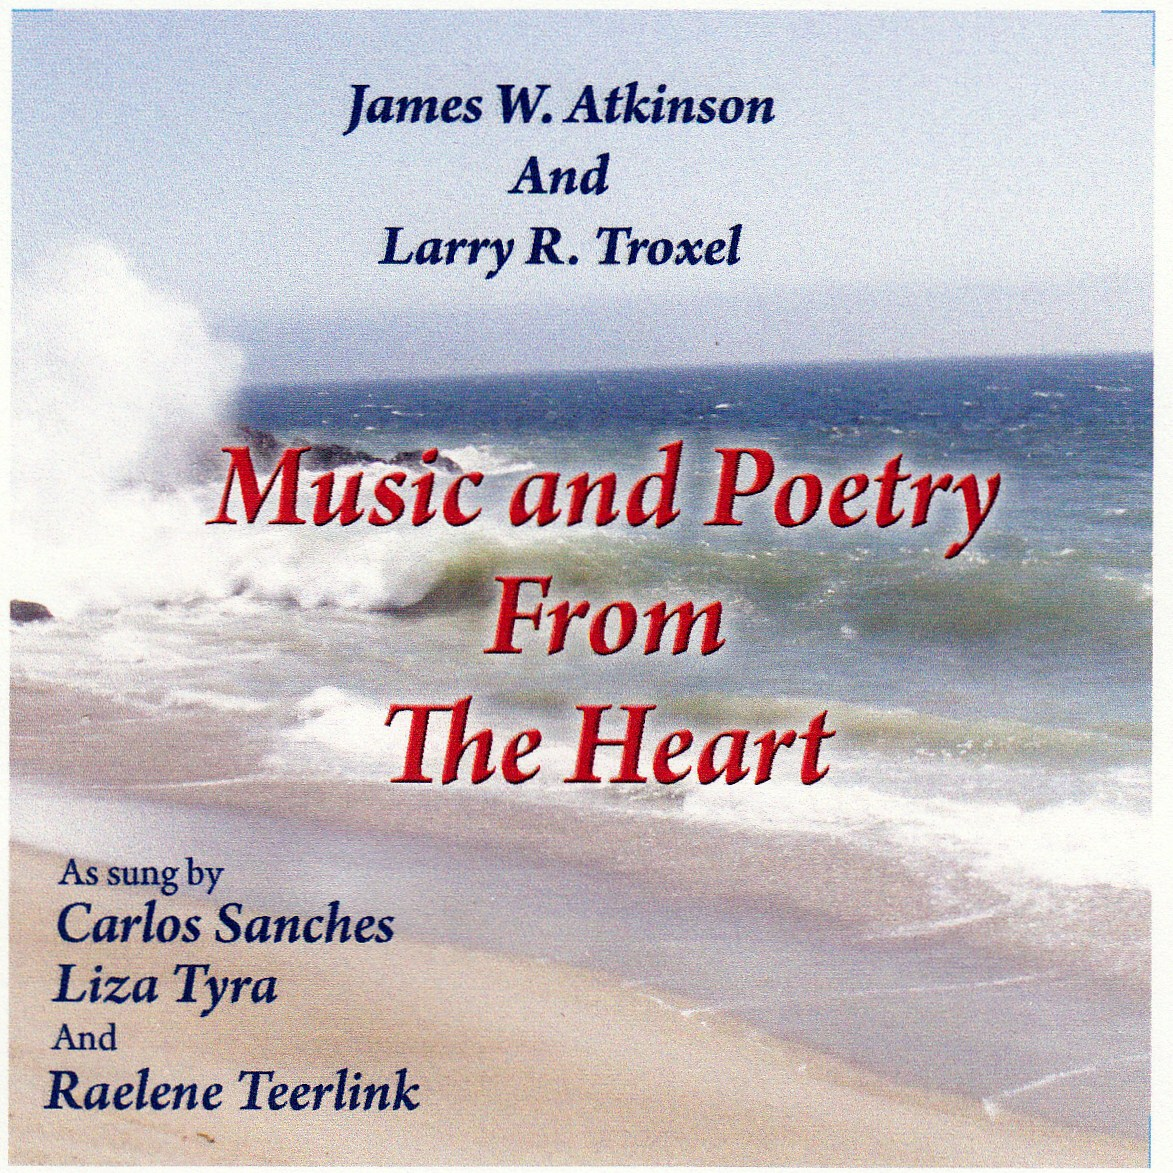 music and poetry from the heart final front